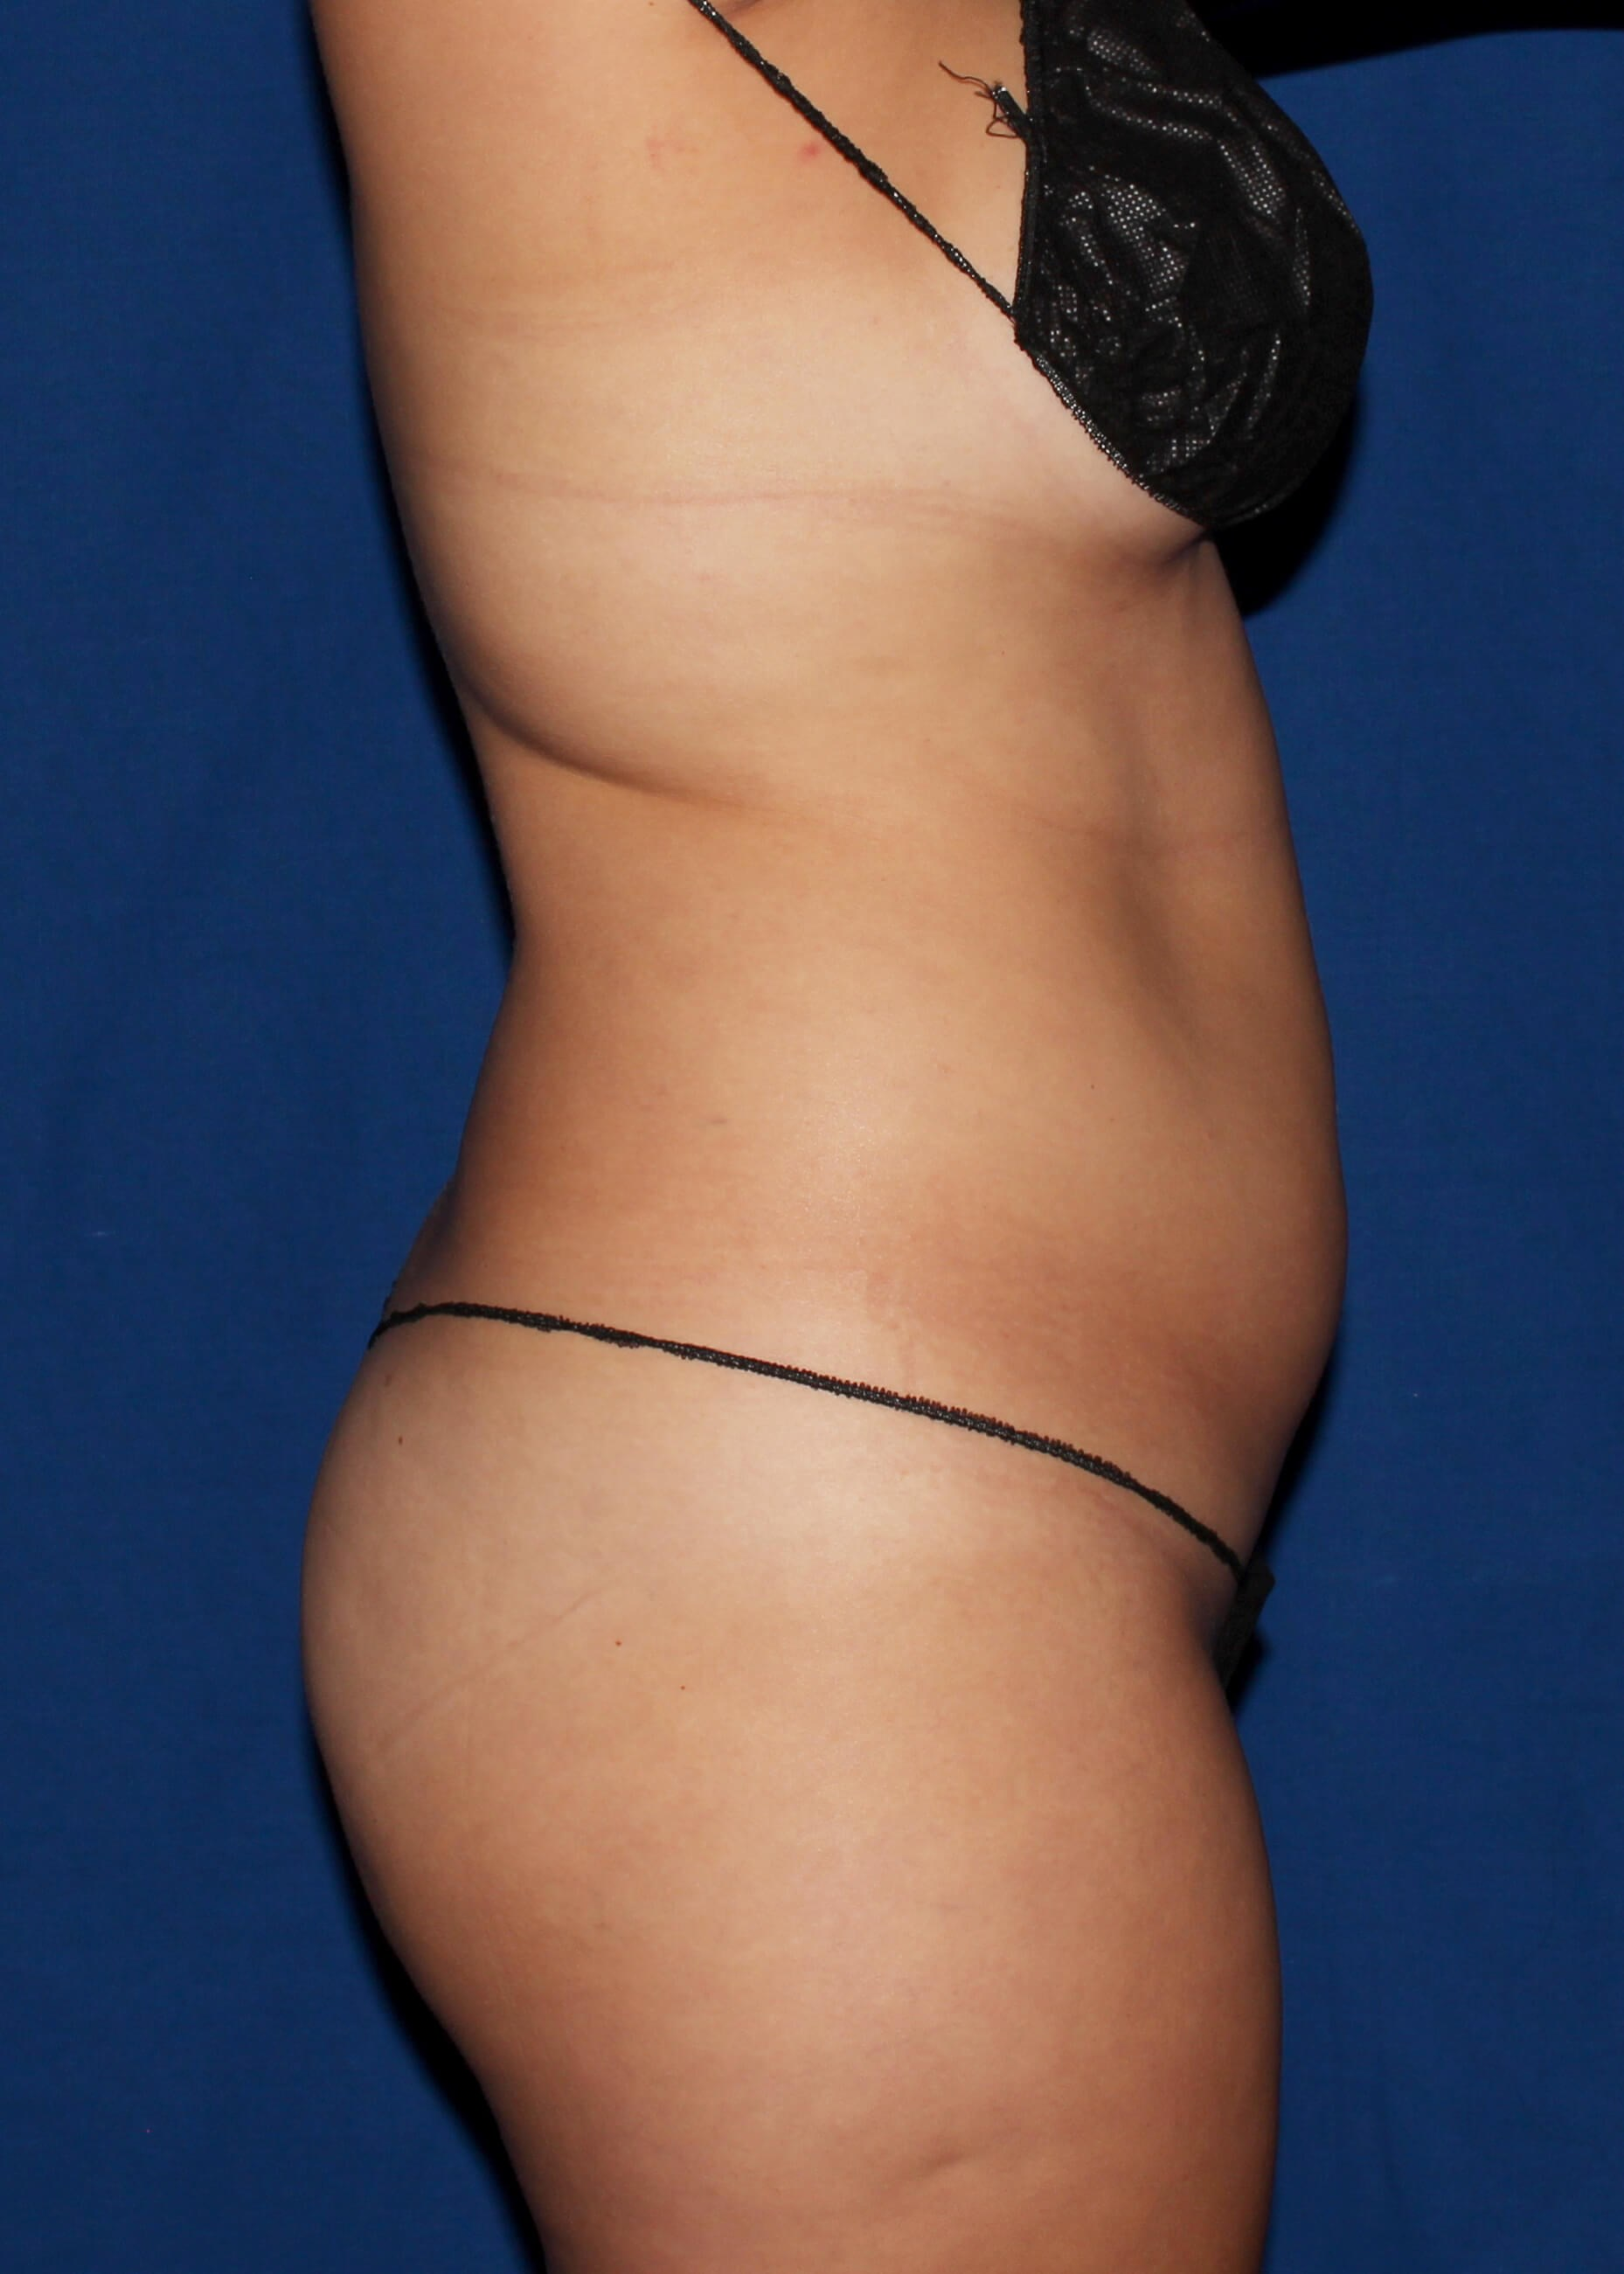 Full Torso Liposuction Before - RIGHT SIDE VIEW